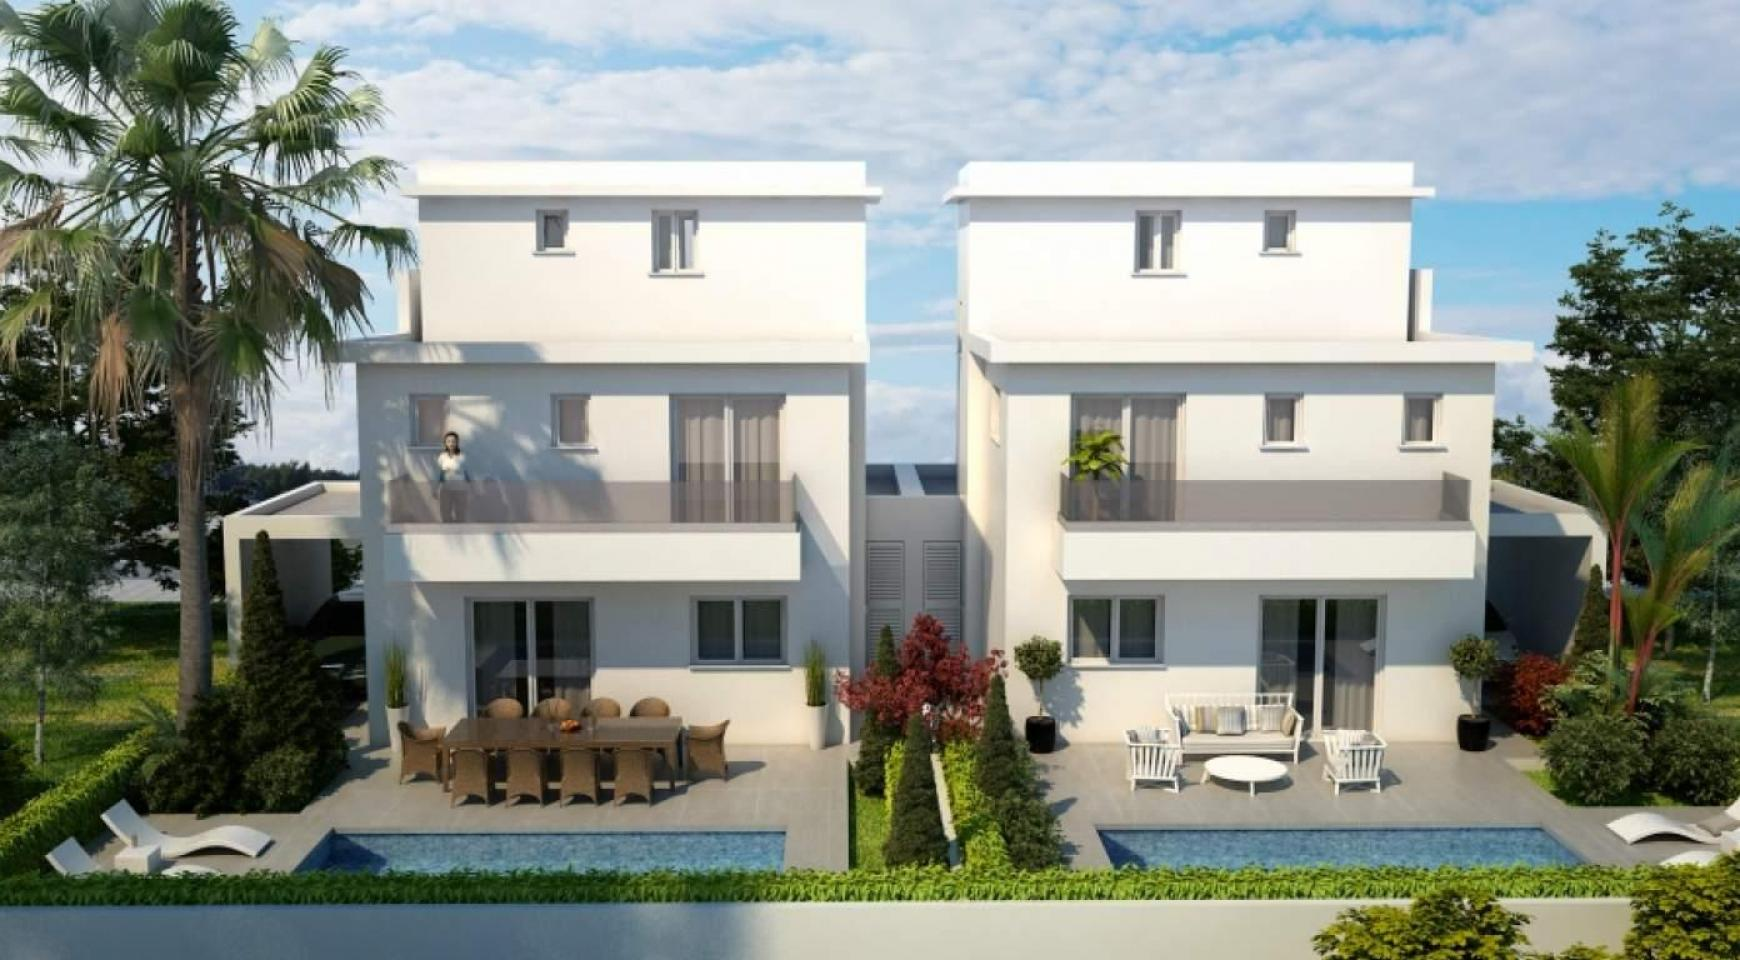 4 Bedroom House in Leivadia Area - 5